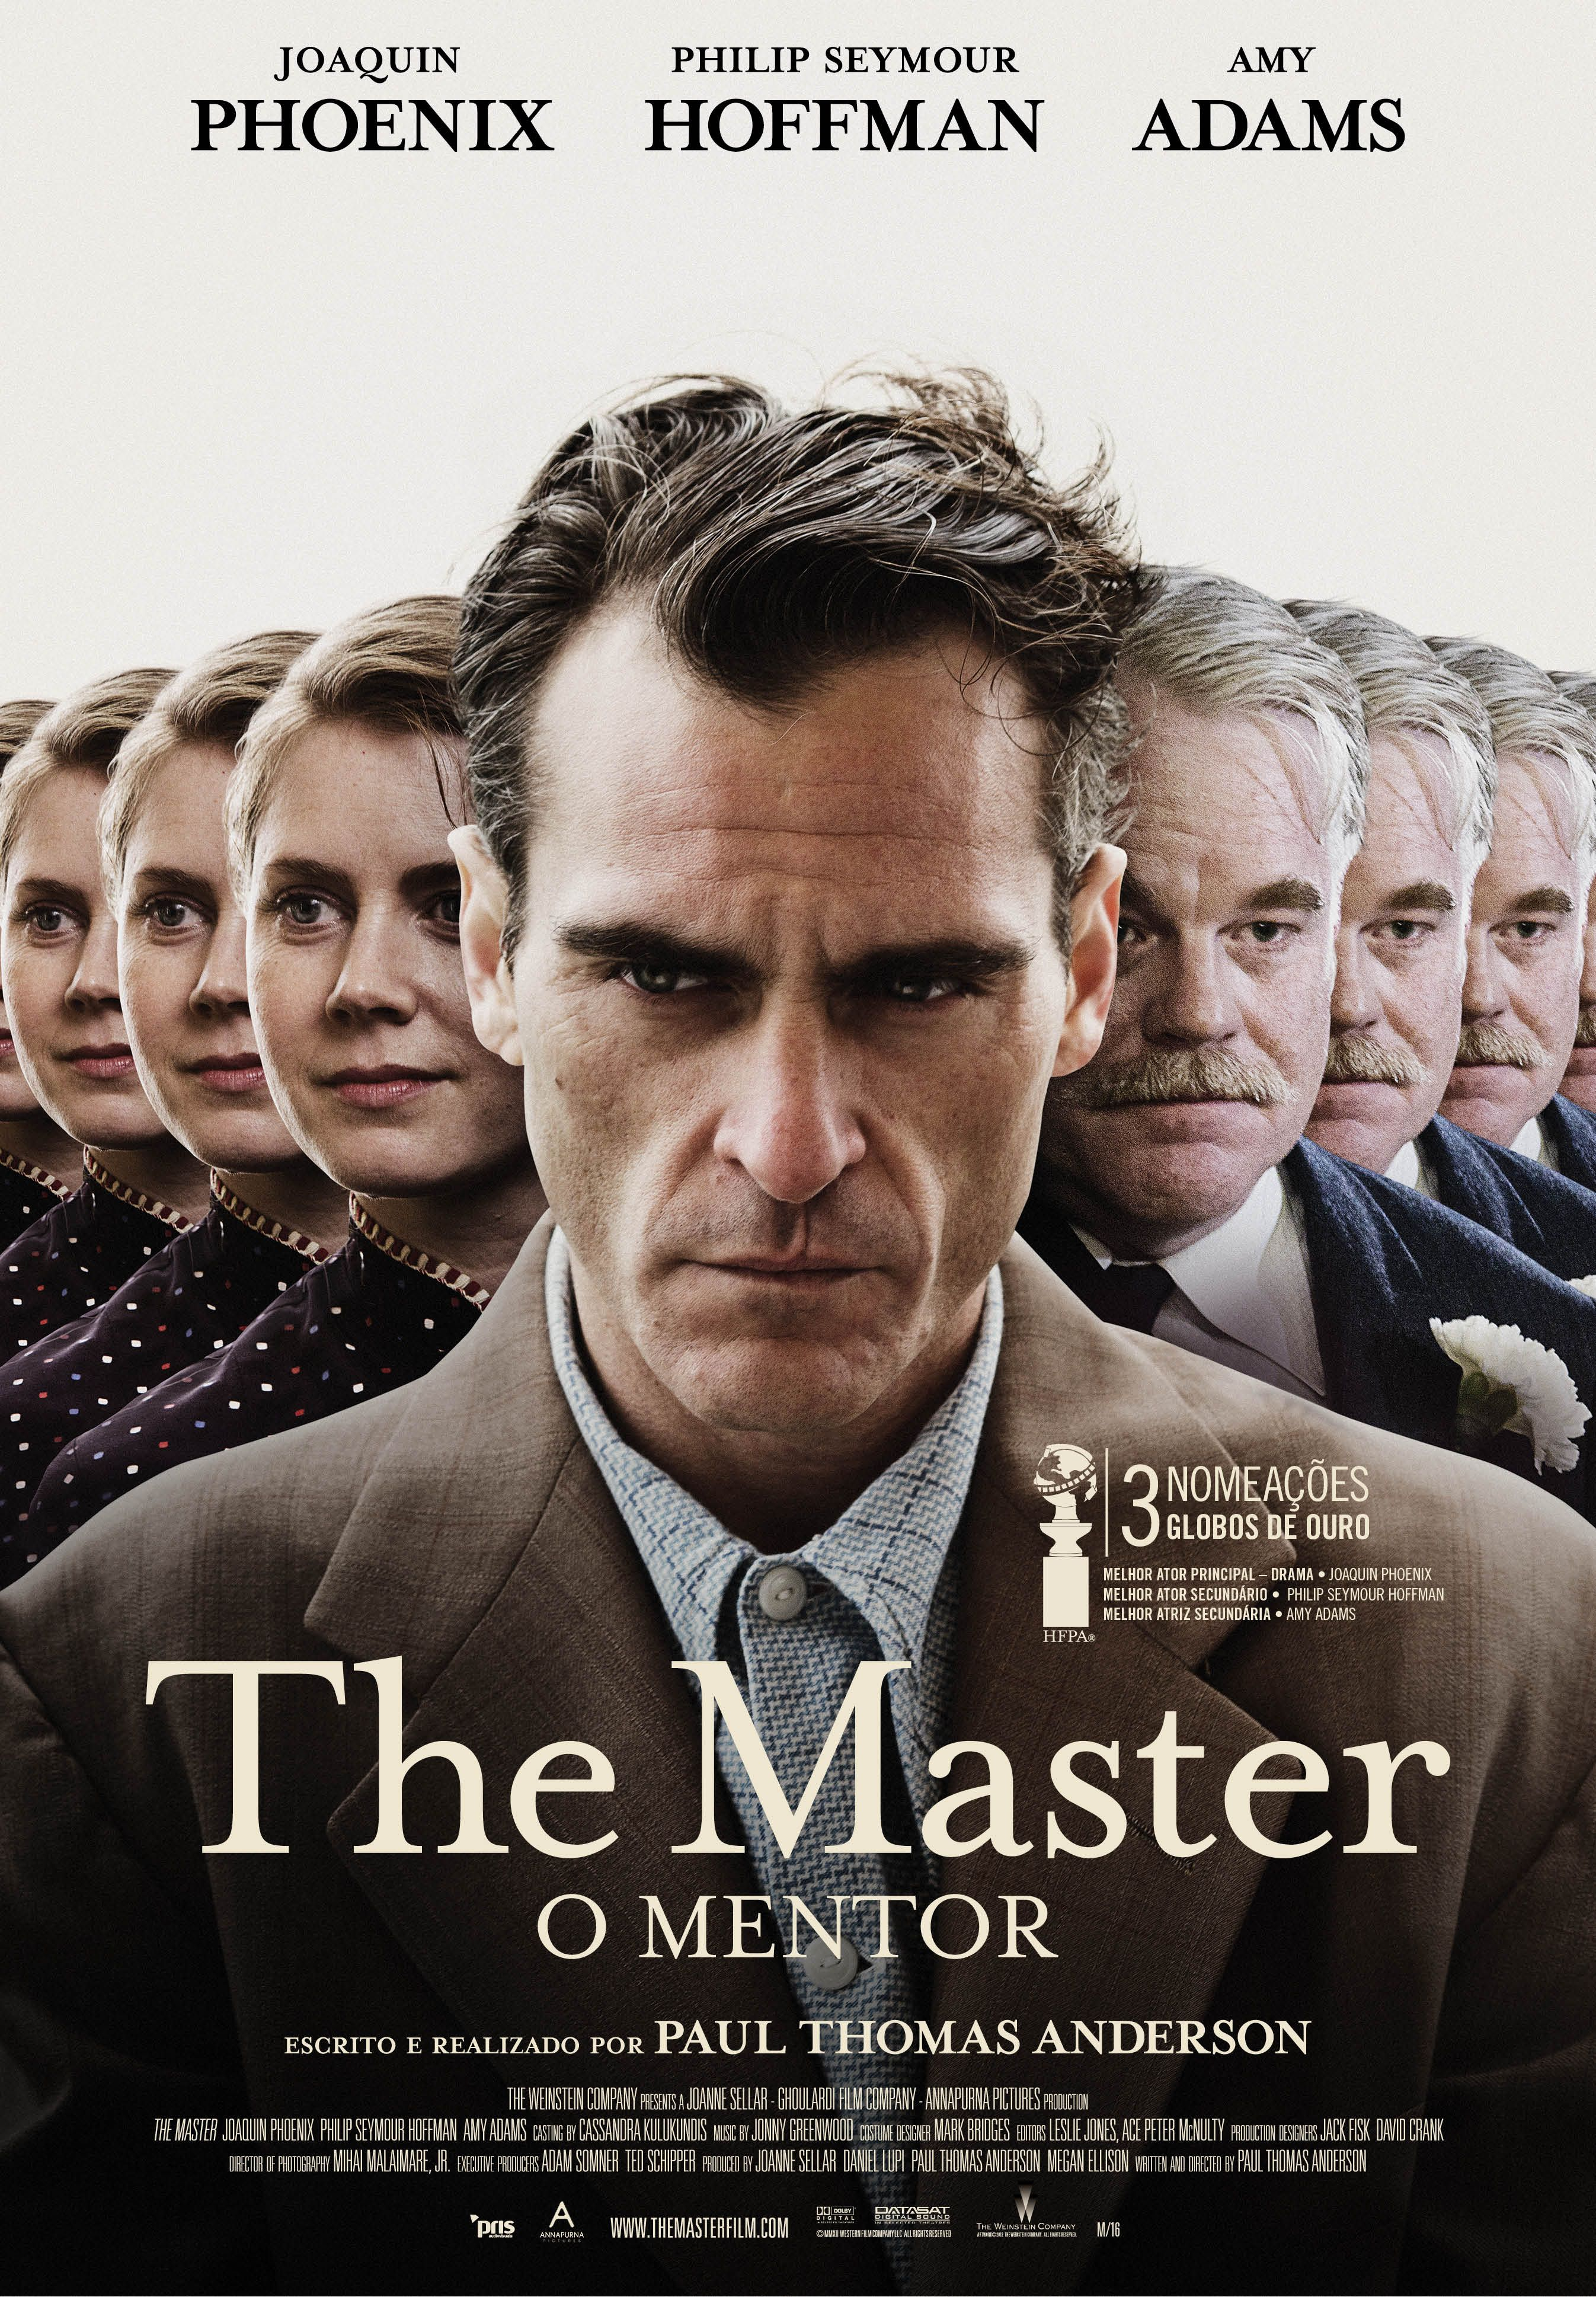 The great master - the film in 2018 73